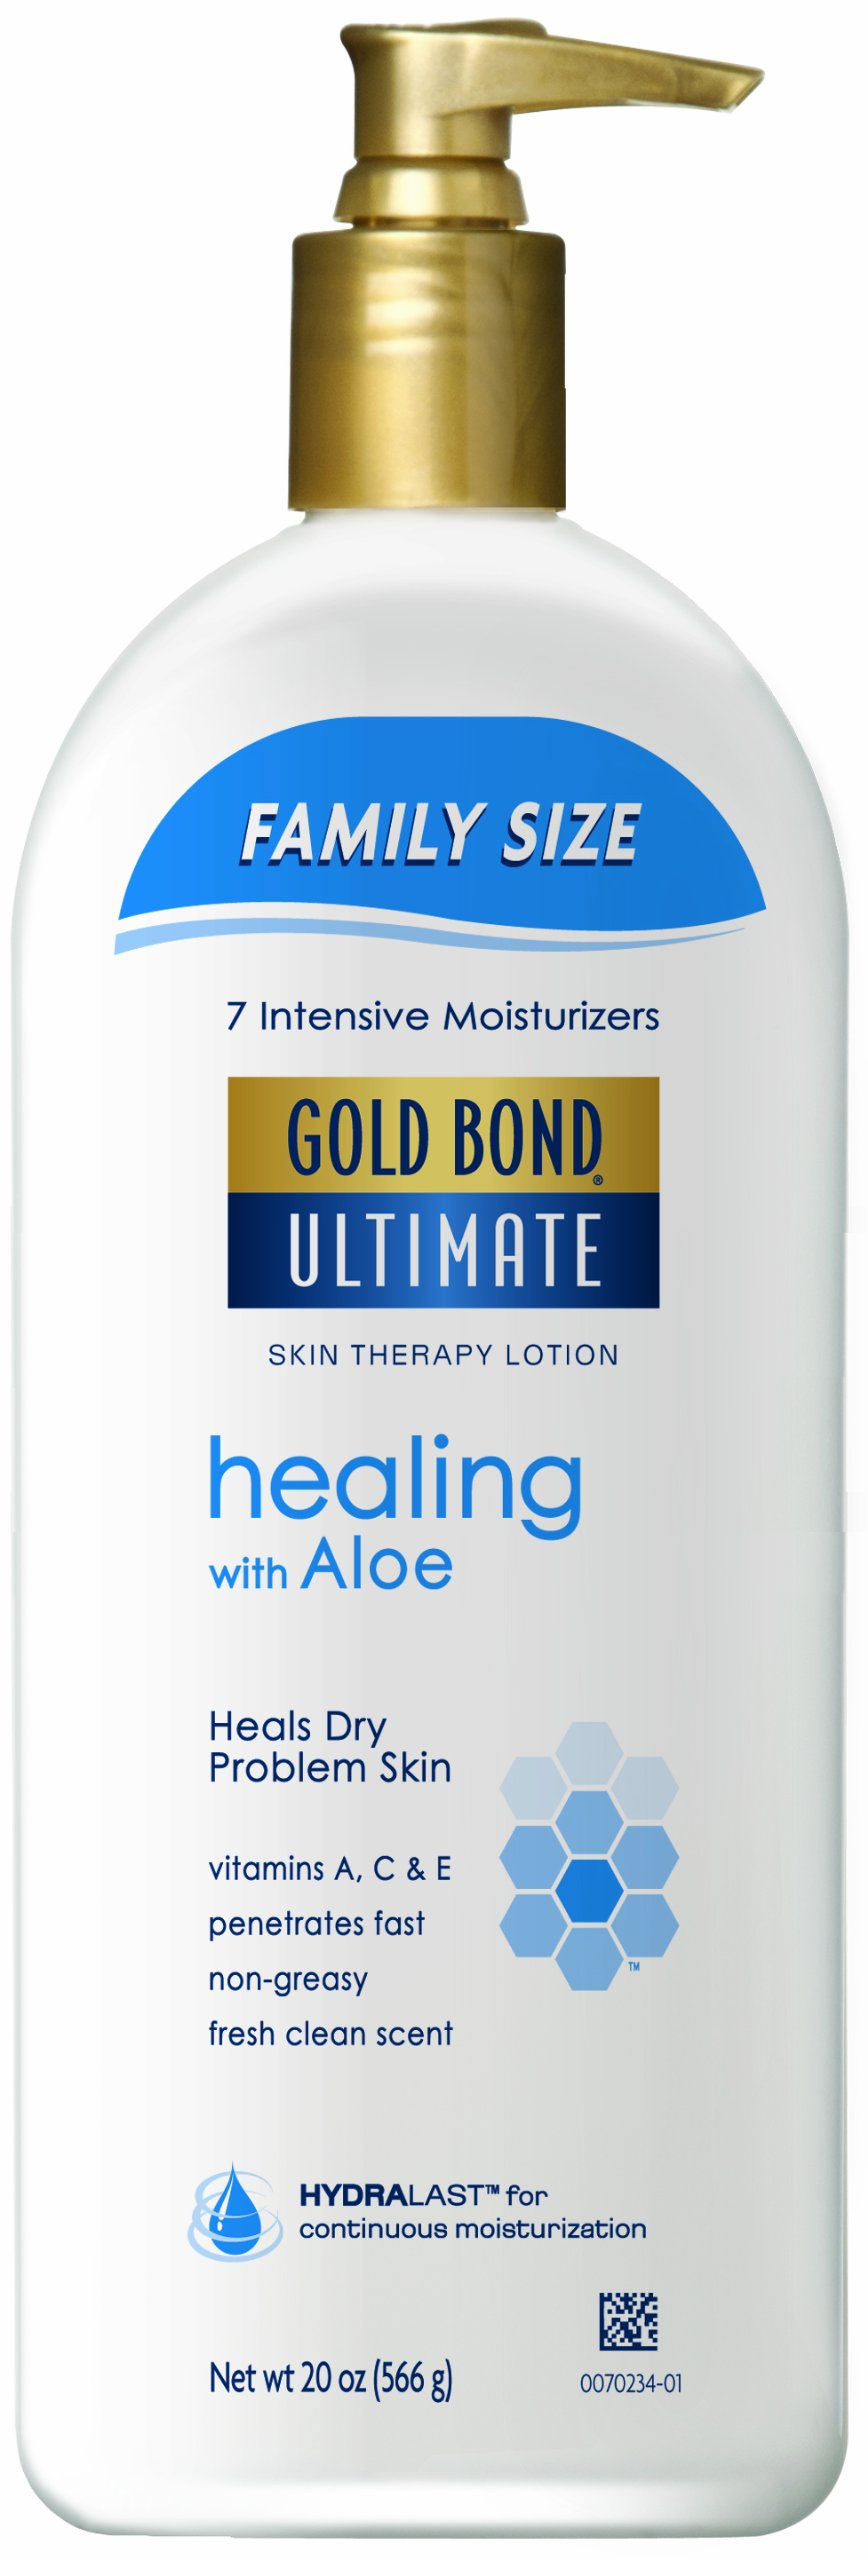 Gold Bond Ultimate Healing Skin Therapy Lotion Family Size, Aloe, 20 Ounce by Gold Bond